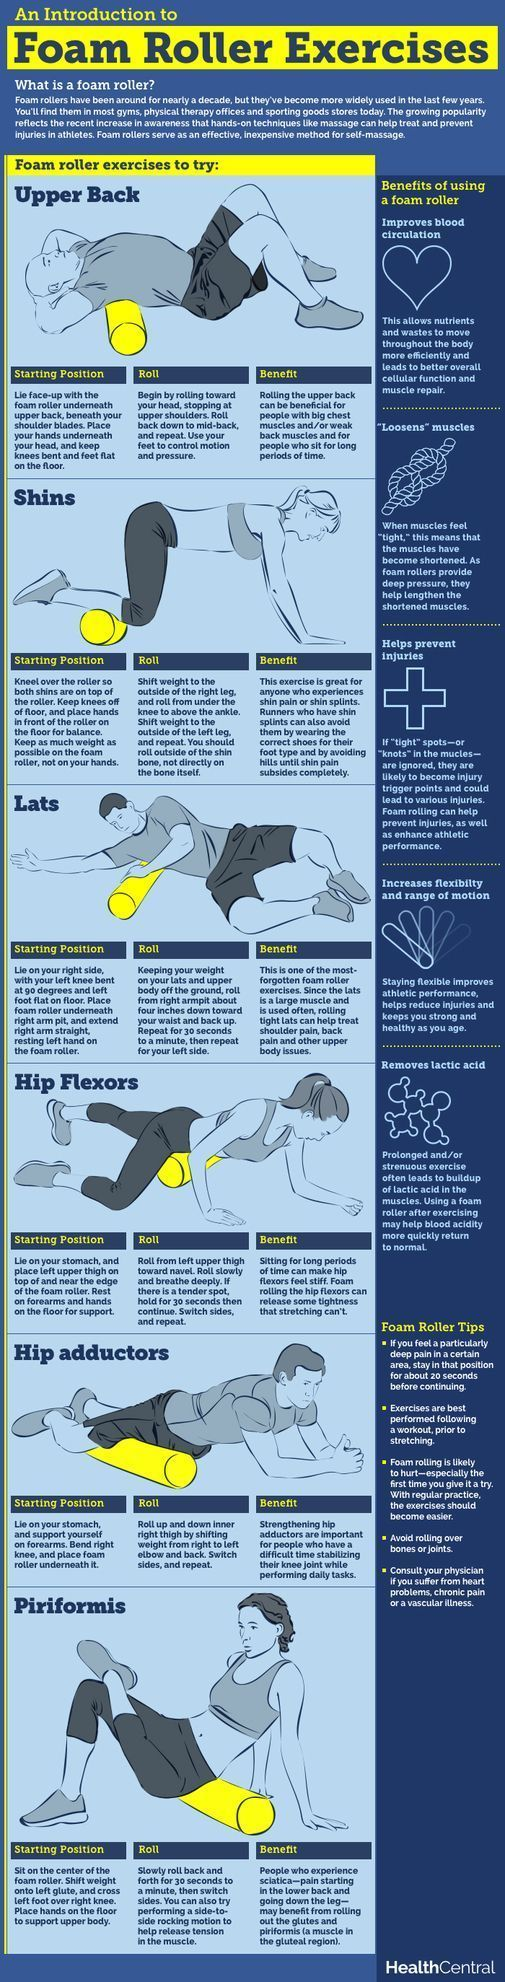 Use These Pinterest Workouts for Your Next Home-Based Routine: Foam Roller Workout